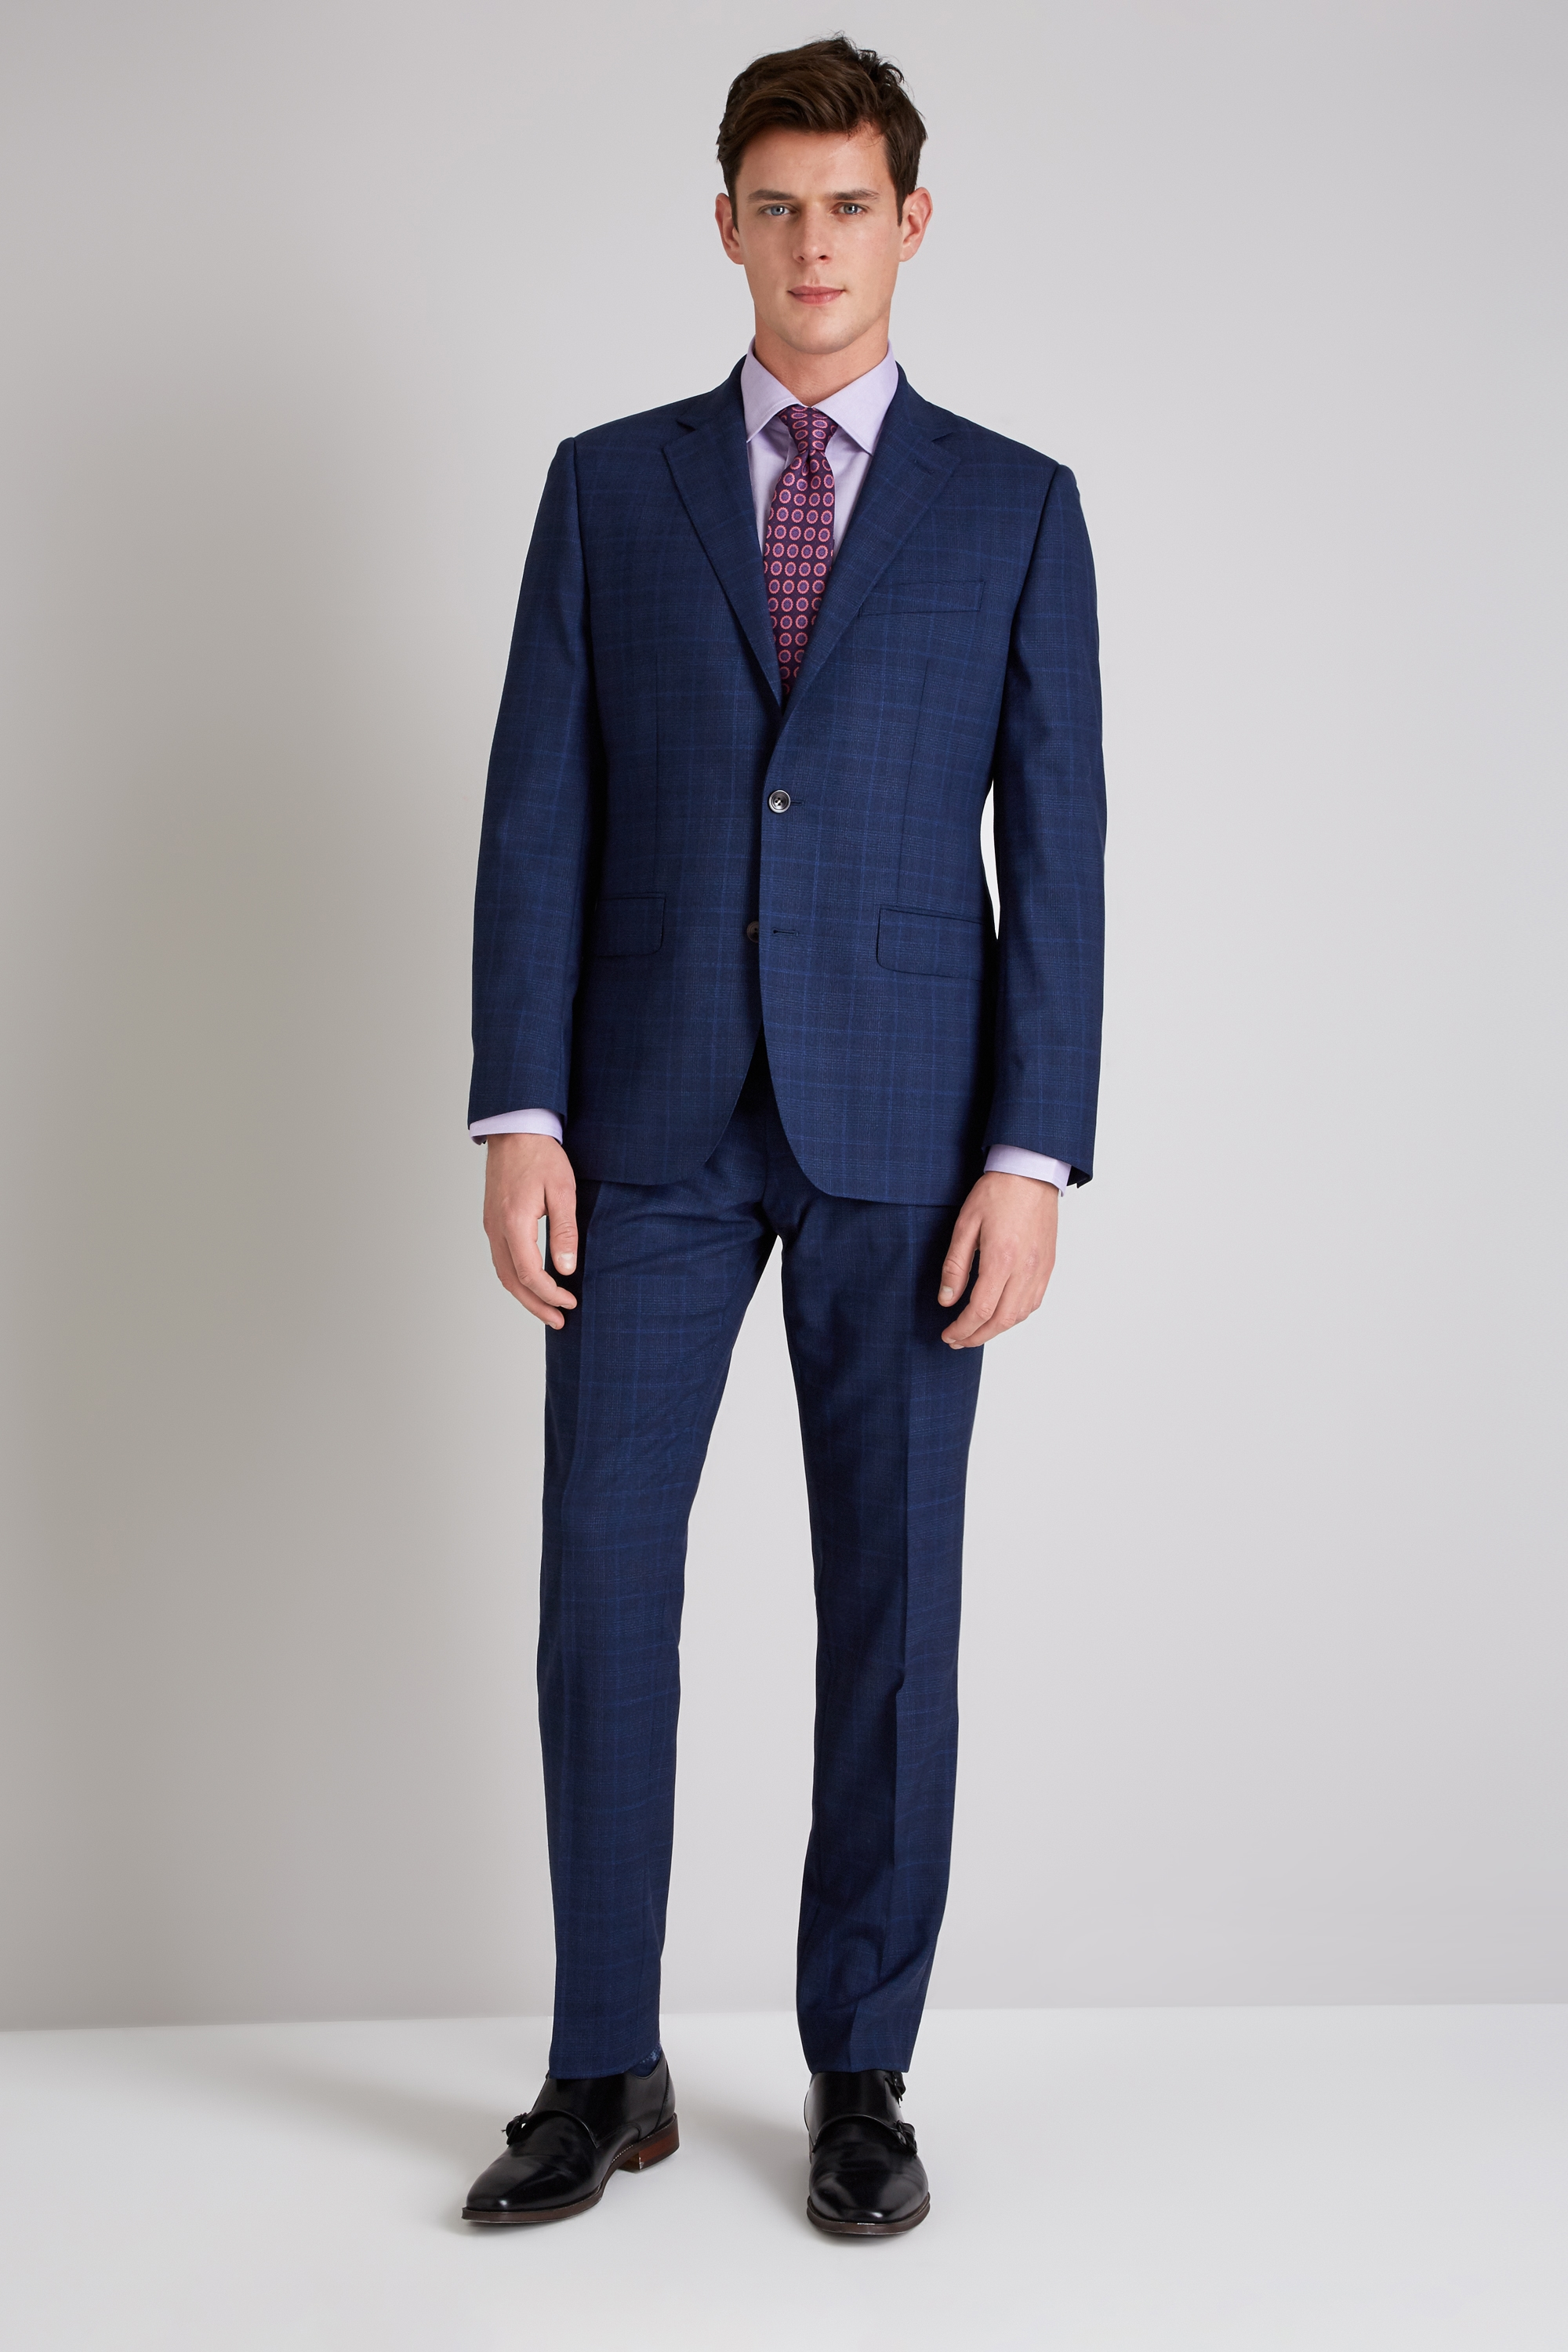 Ermenegildo Zegna Cloth Tailored Fit Navy Check Suit